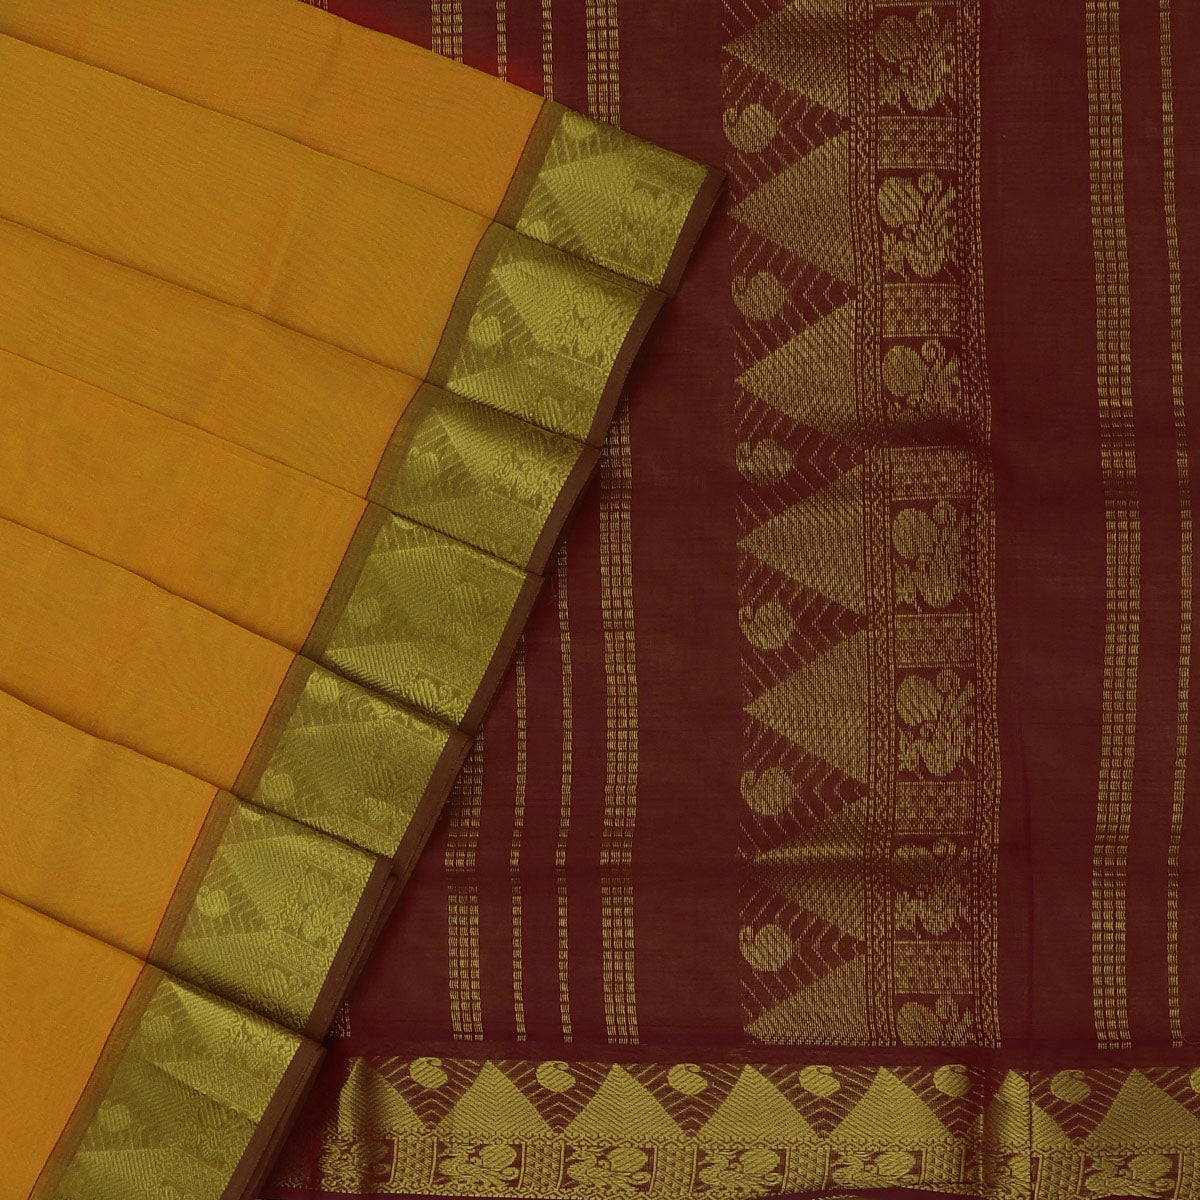 Silk Cotton Saree Yellow and Maroon with Temple zari border 9 yards